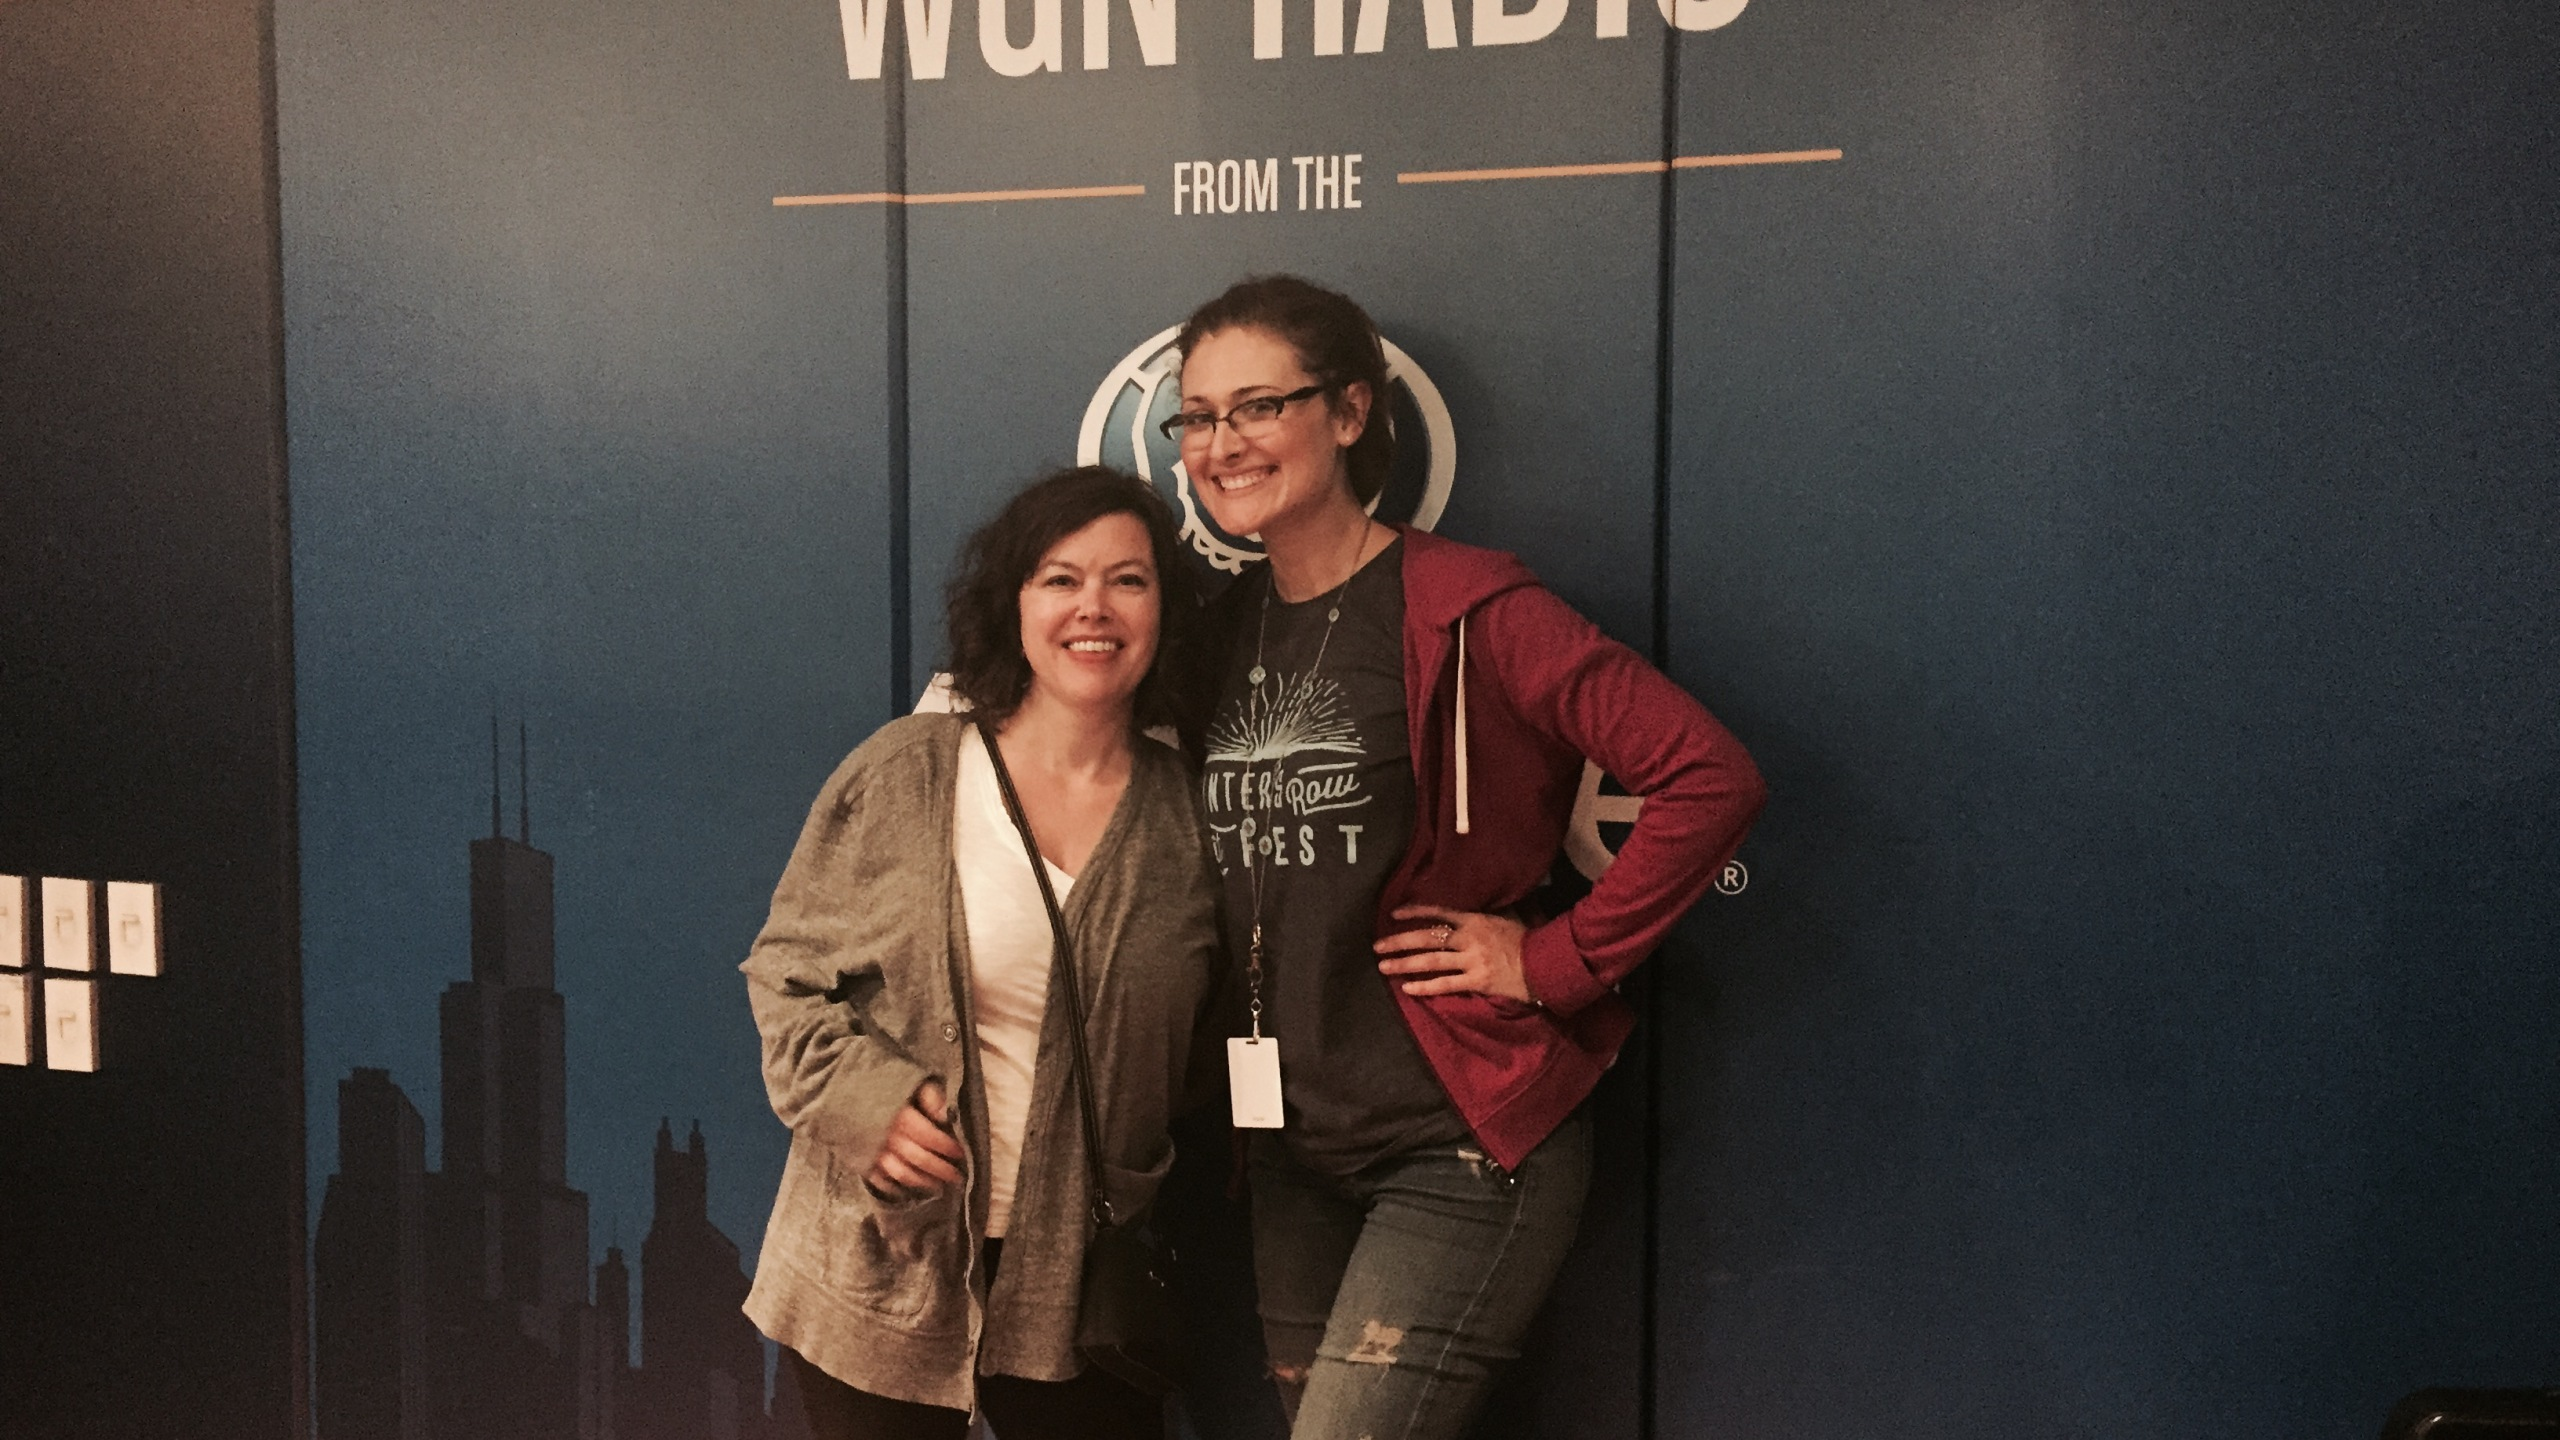 The Wintrust Business Lunch Suzanne Muchin And Cnet S Ashley Esqueda Wgn Radio 720 Chicago